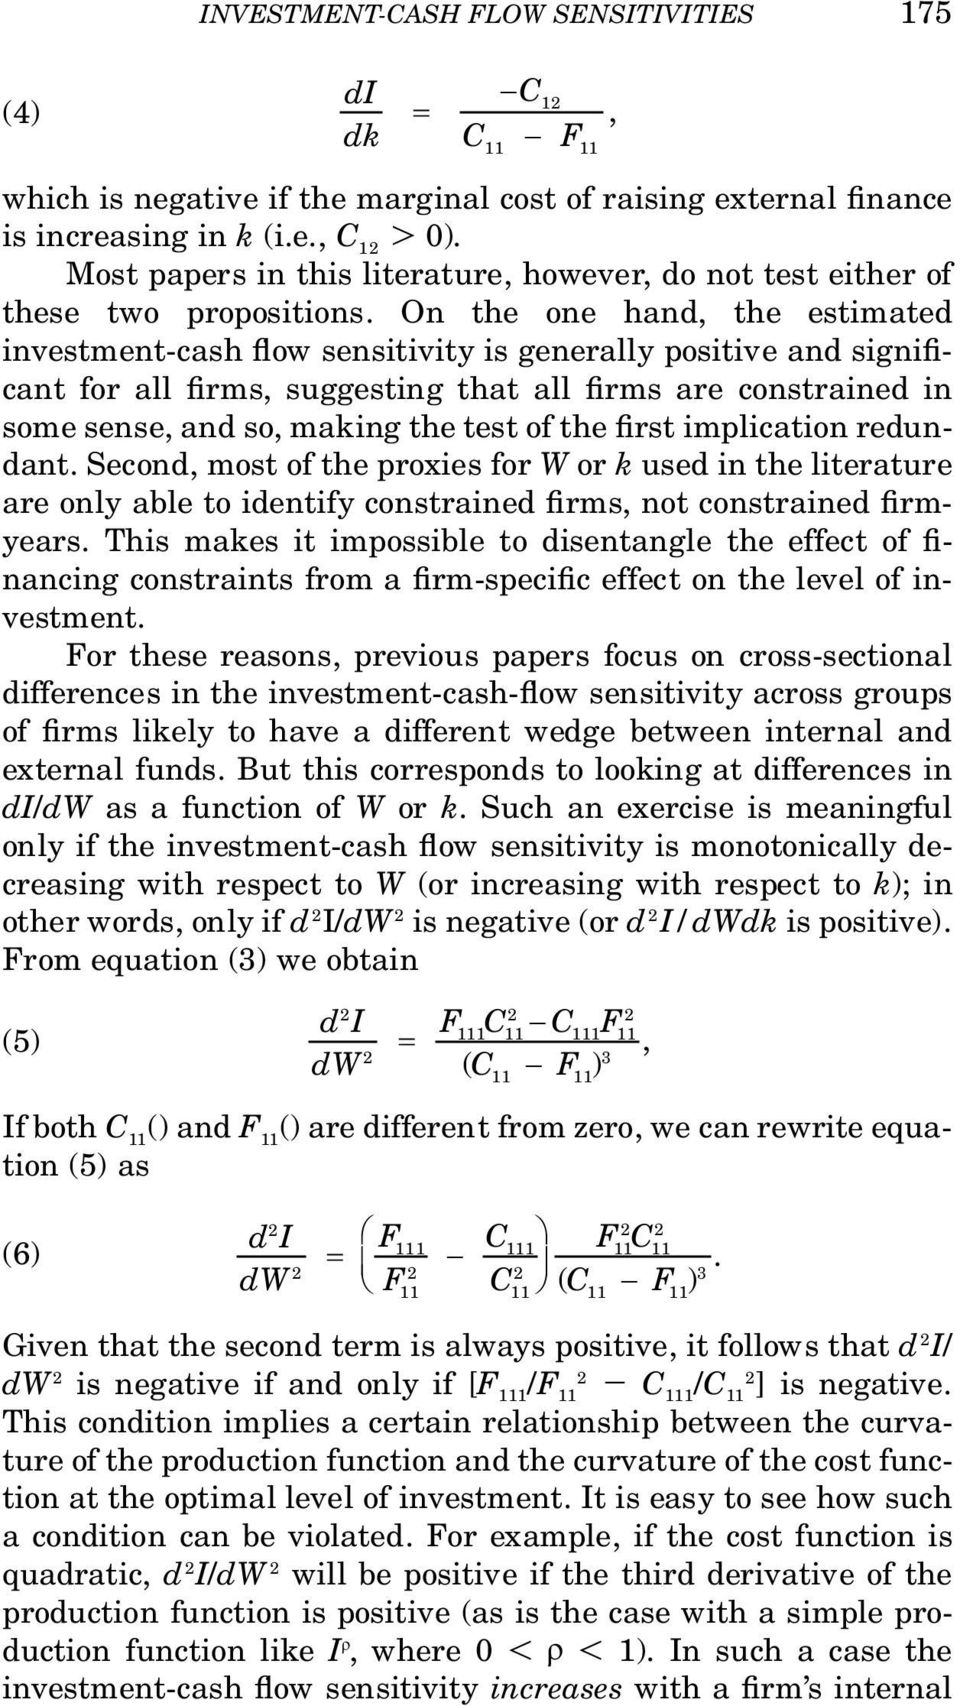 On the one hand, the estimated investment-cash ow sensitivity is generally positive and signi cant for all rms, suggesting that all rms are constrained in some sense, and so, making the test of the